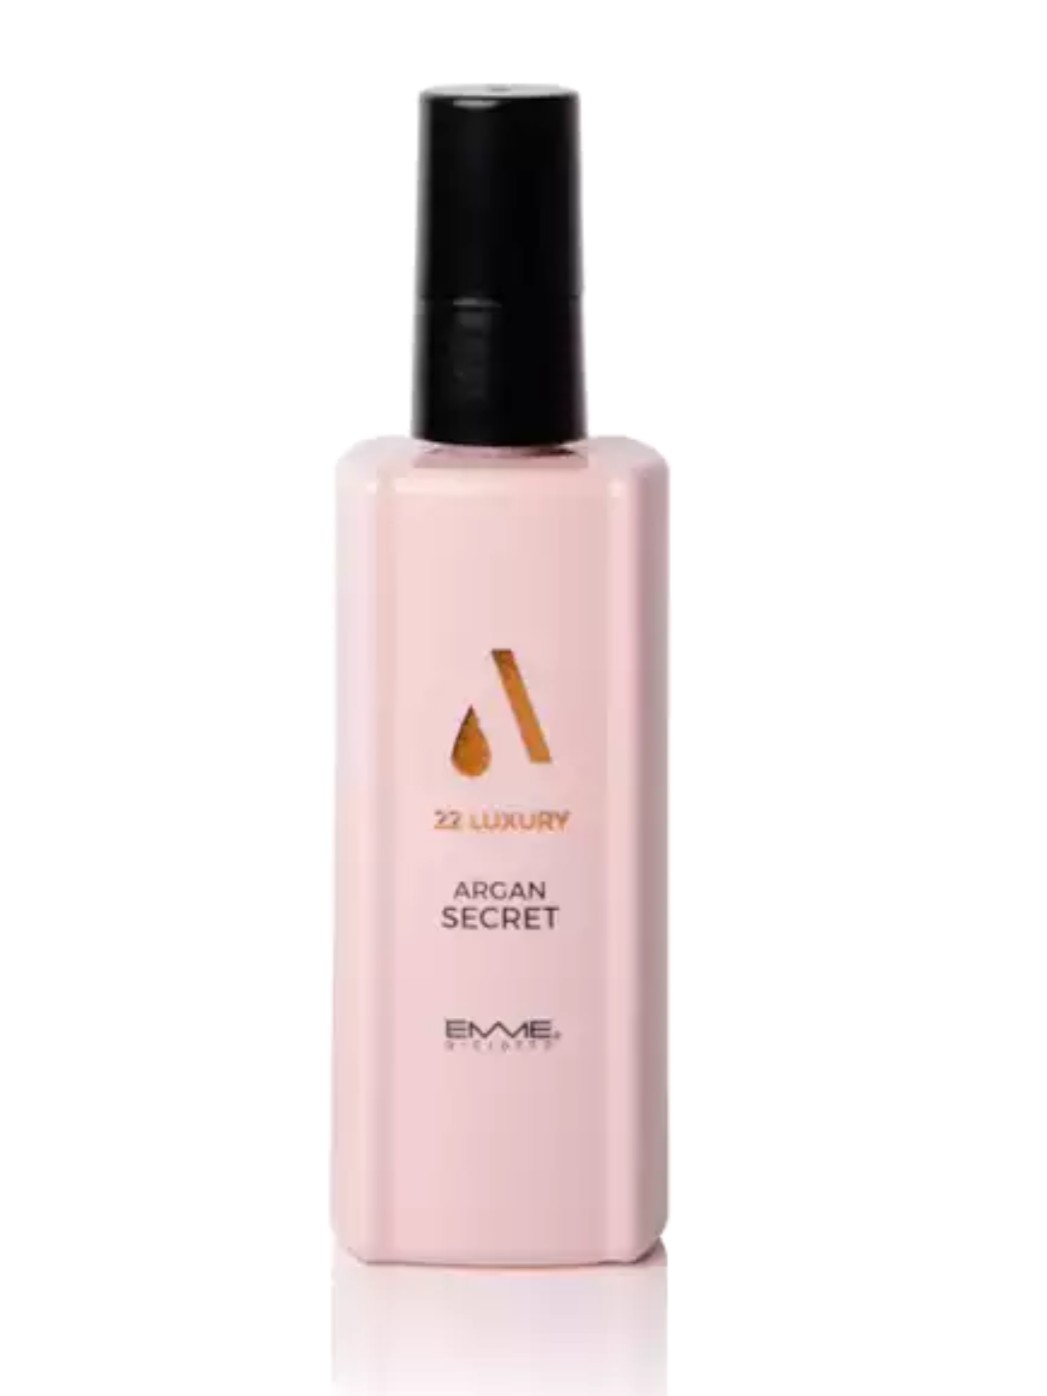 Разглаживающий спрей 22 Luxury Argan Secret